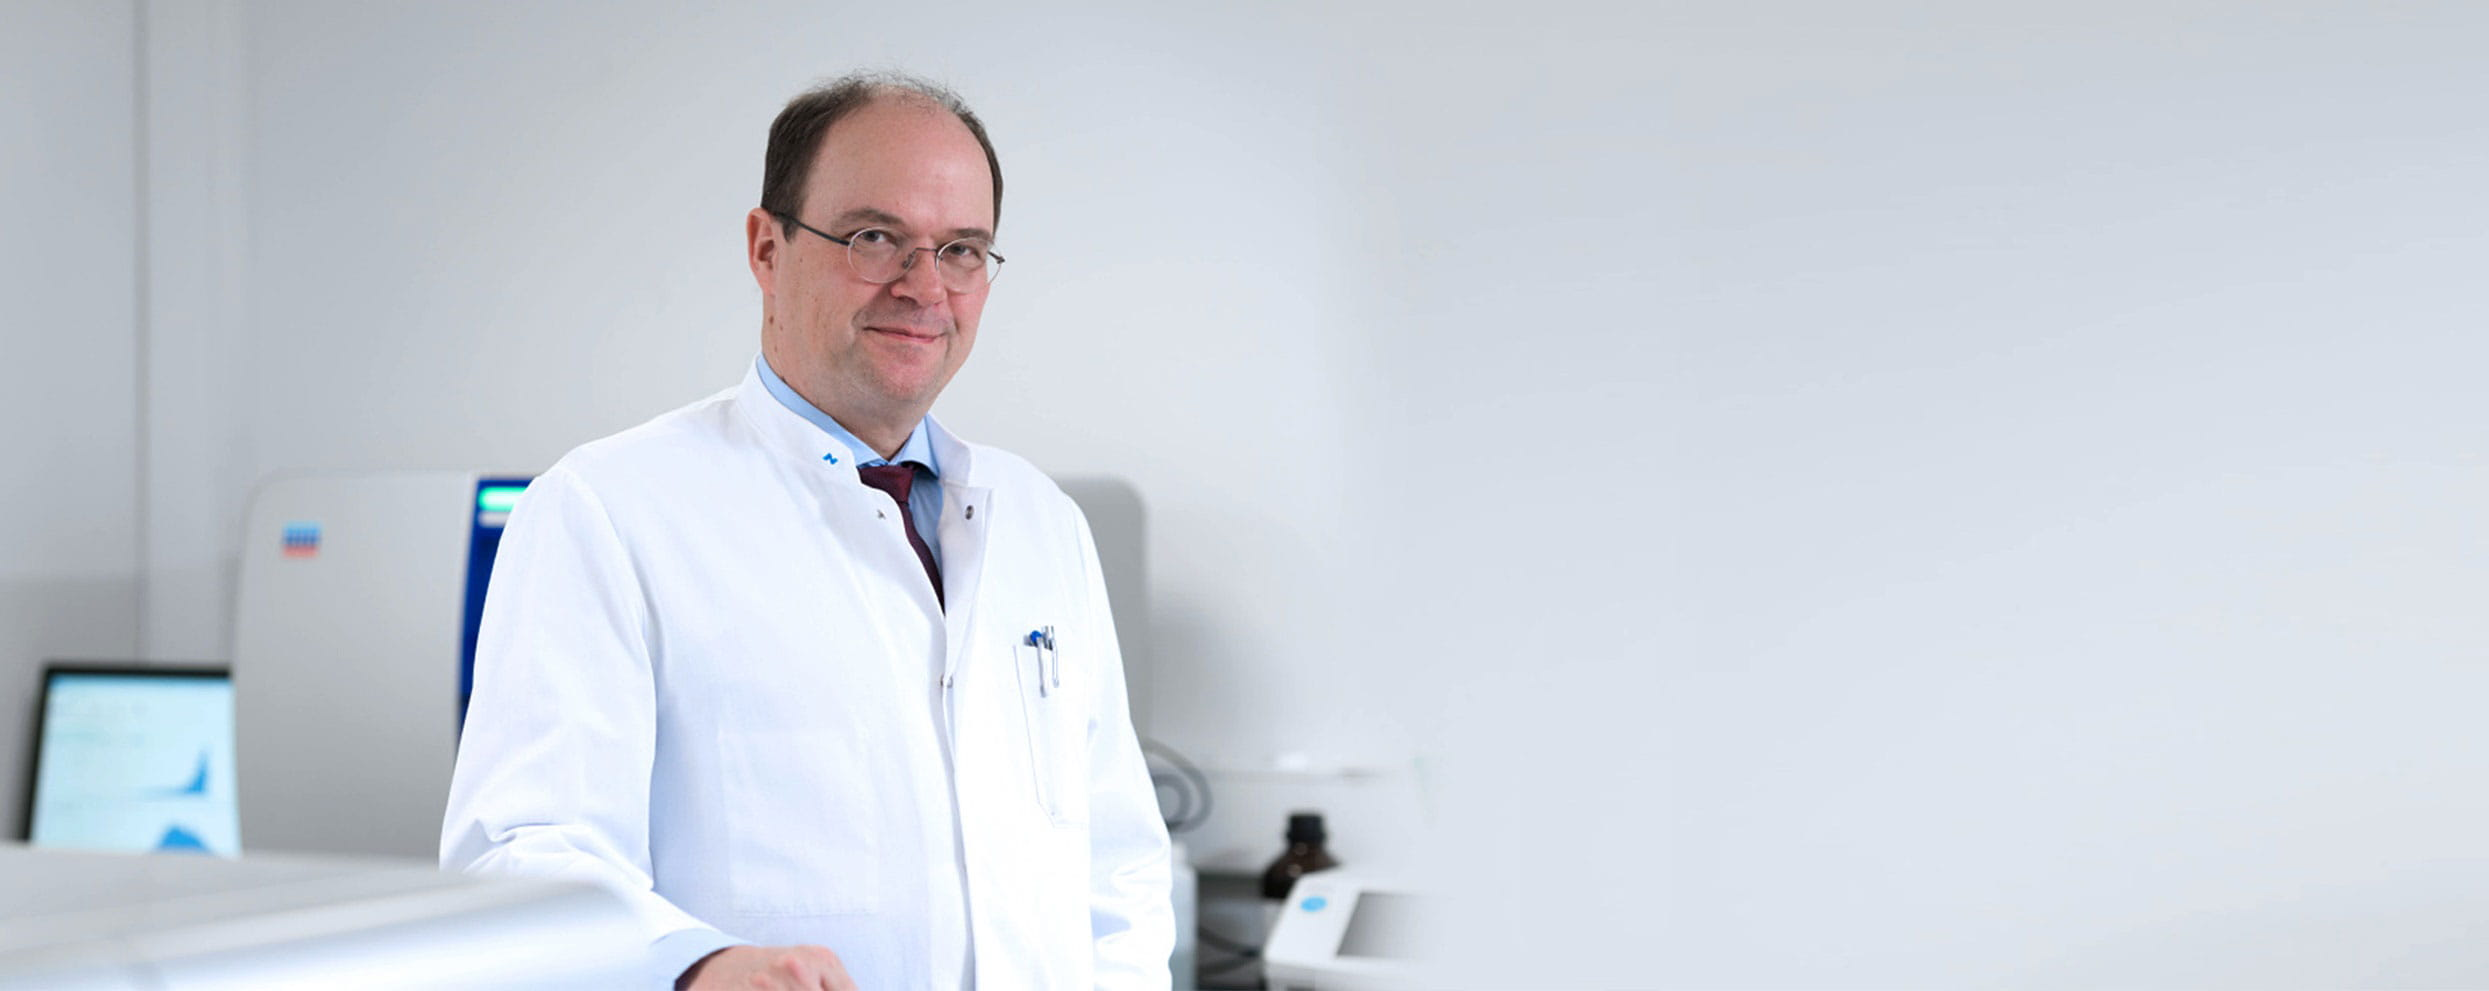 Dr. Achim Battmann interview